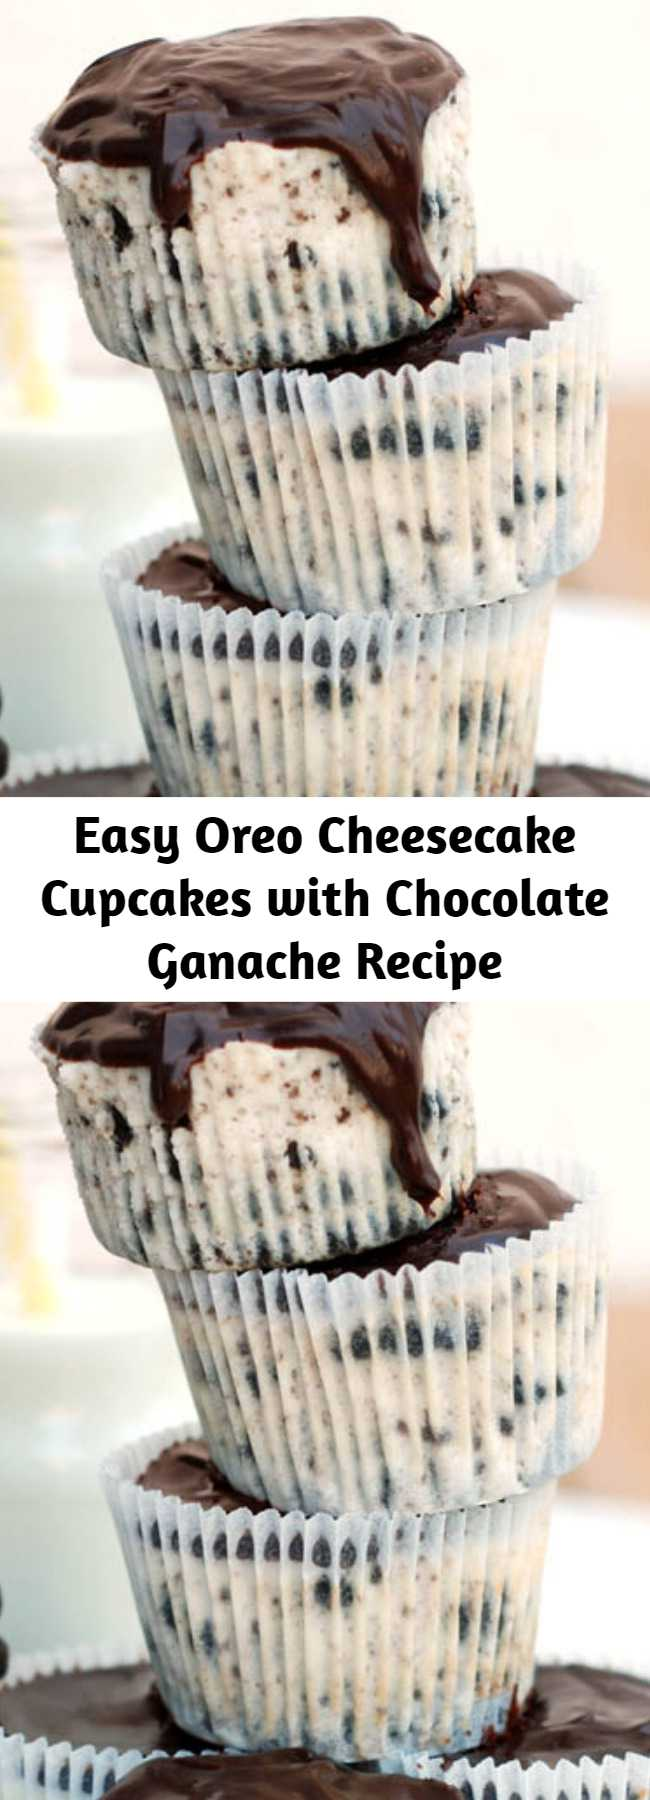 Easy Oreo Cheesecake Cupcakes with Chocolate Ganache Recipe - Oreo Cheesecake Cupcakes with Chocolate Ganache are delicious mini cheesecakes loaded with Oreo chunks & topped with rich chocolate ganache. They're so tasty!